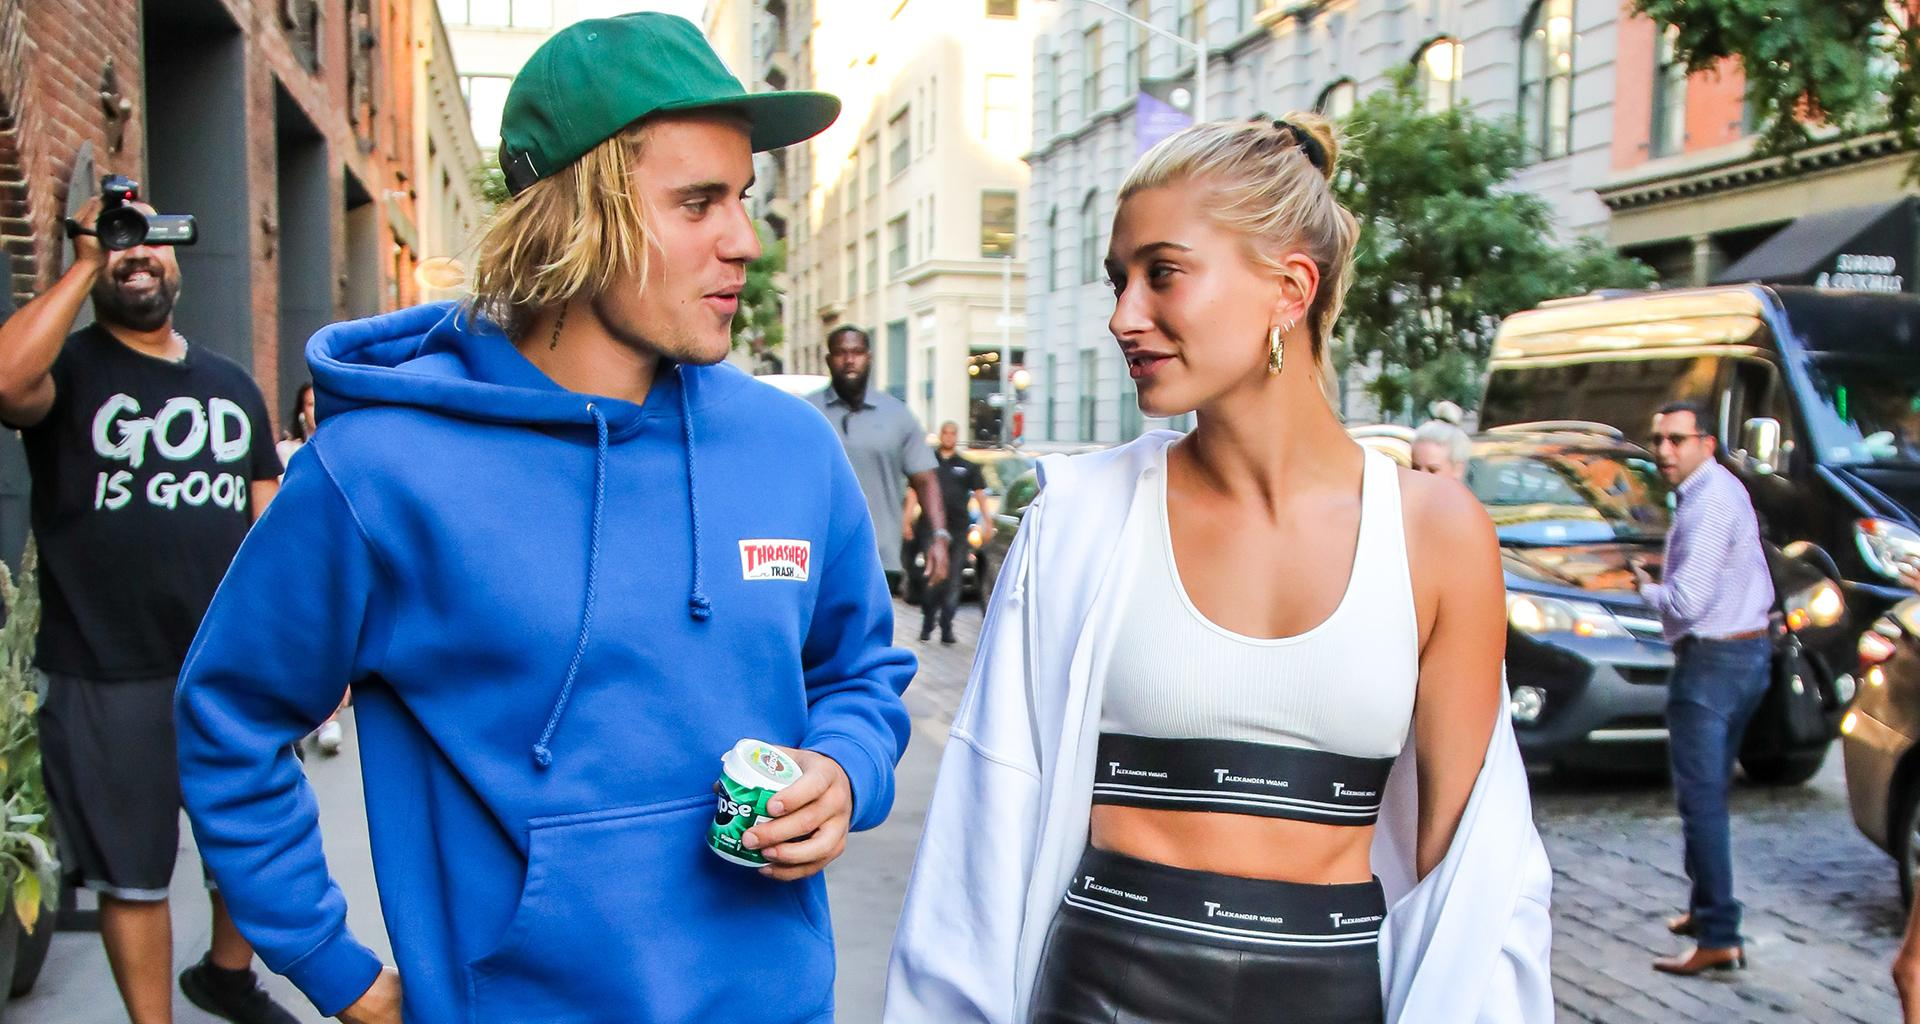 Justin Bieber And Hailey Baldwin - Here's Why They Returned To L.A. After Quarantining For 2 Months In Canada!